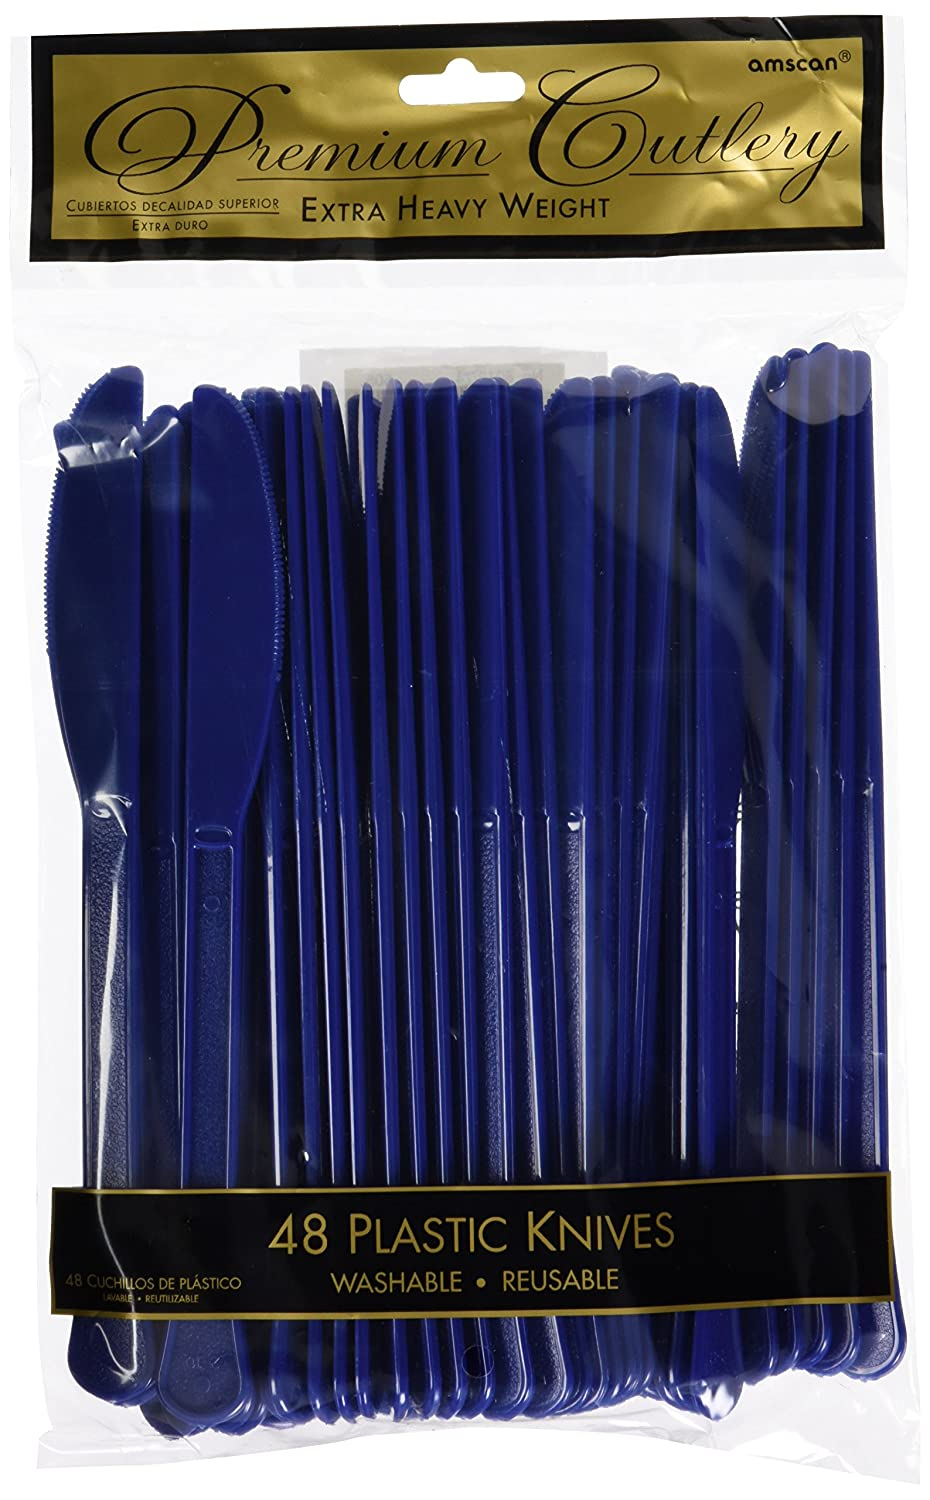 Amazon.com: Amscan Reusable Party Heavy Weight Plastic Knives Cutlery,Saver Pack of 12 (Each Includes 48 Pieces), Made of Plastic, Navy Blue: Toys & Games